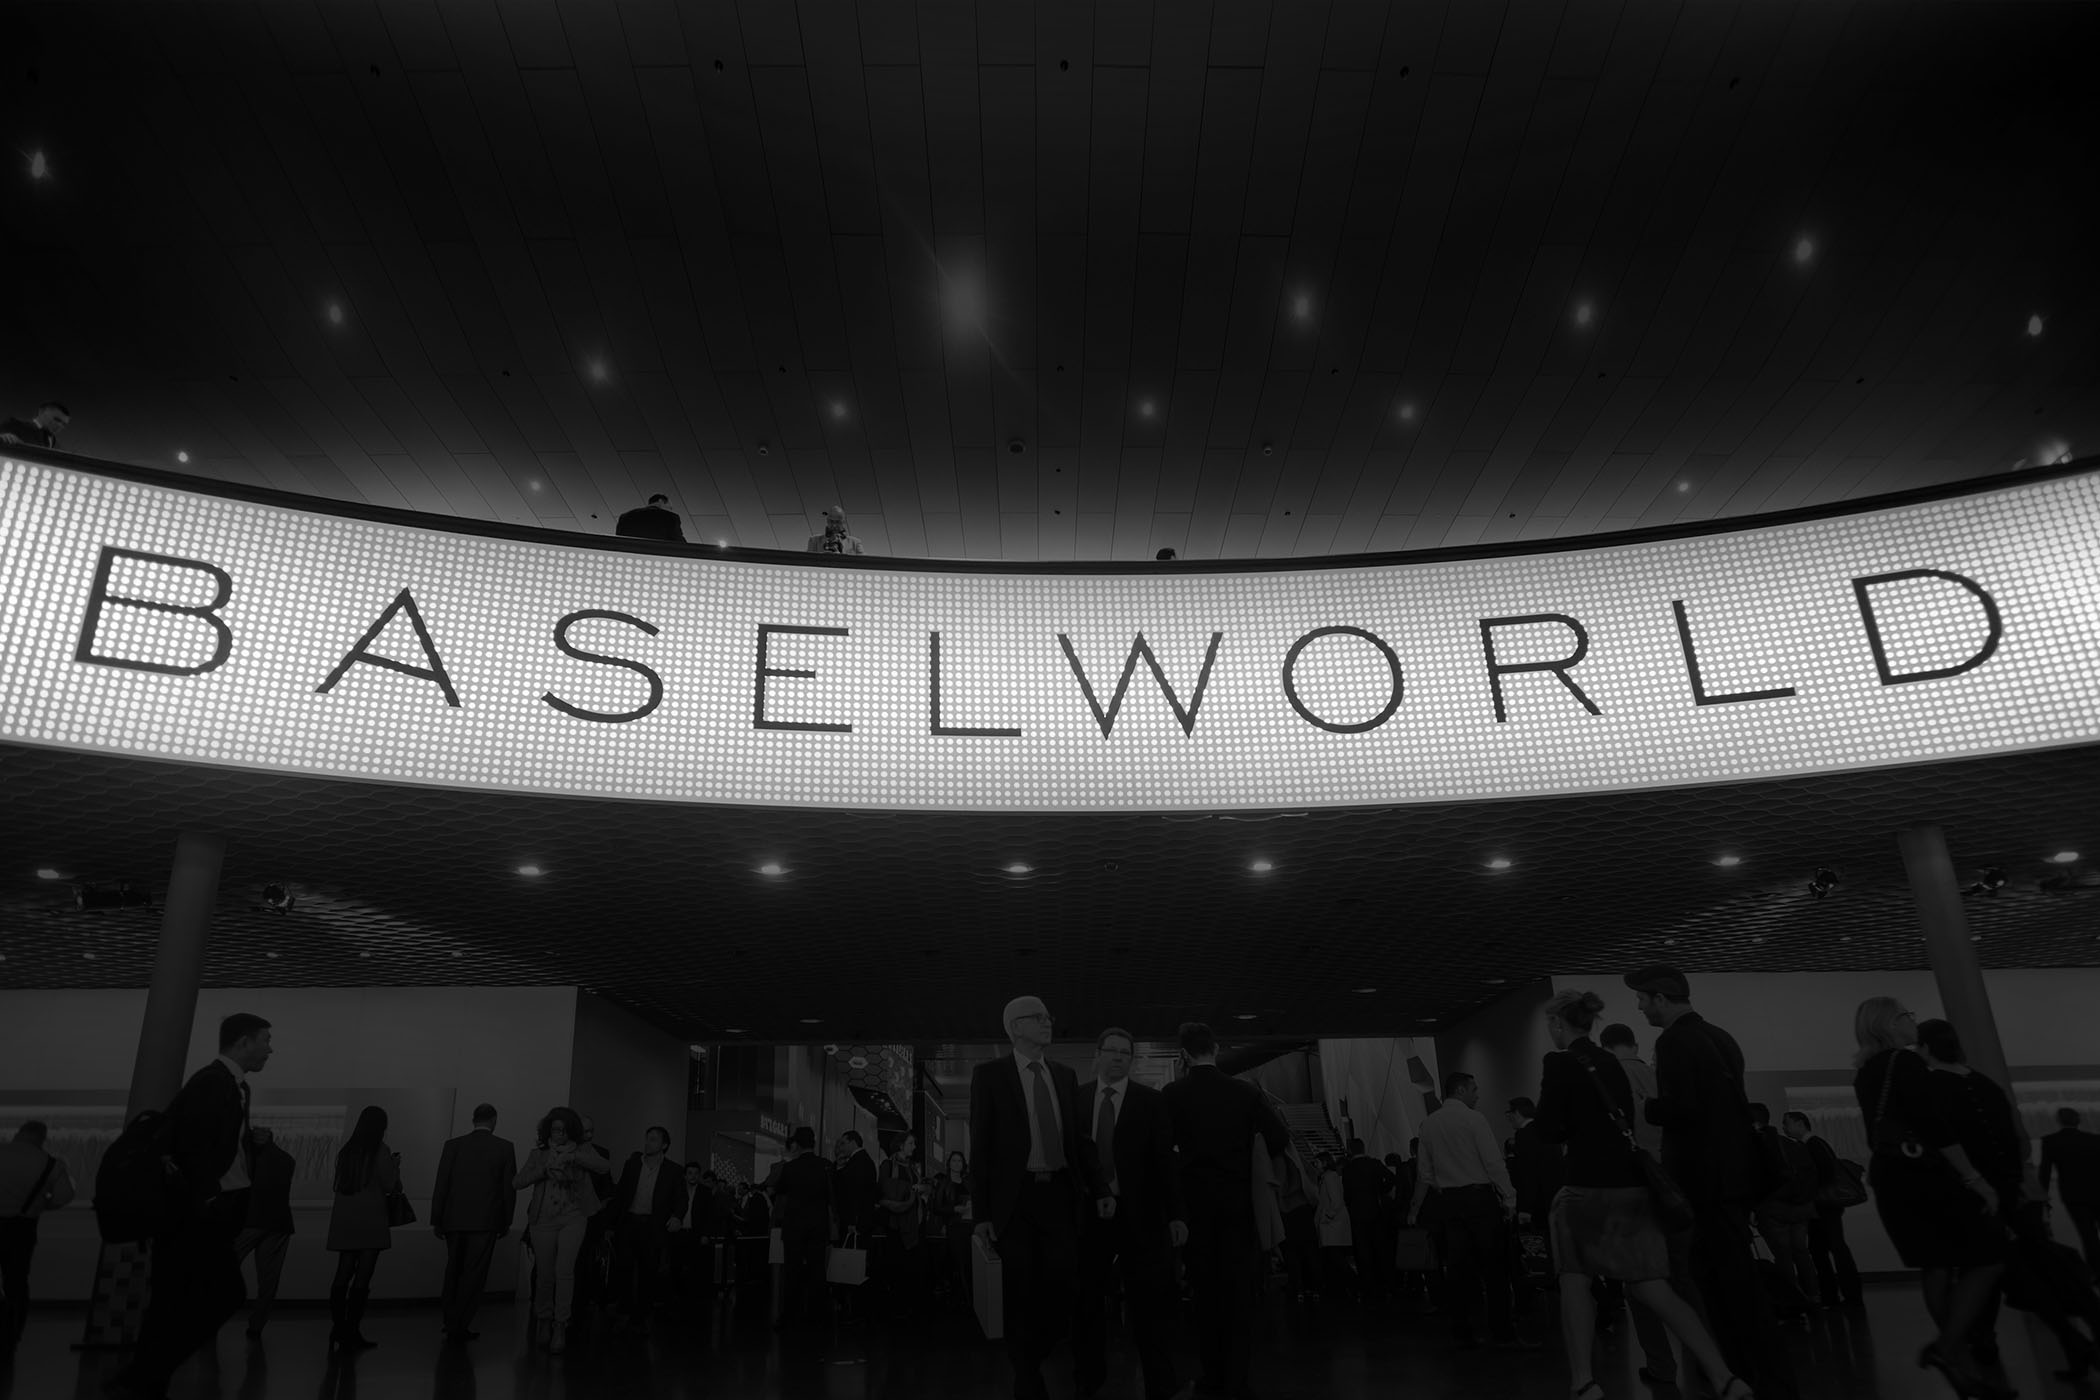 est of Baselworld 2016 - What to expect Baselworld 2017